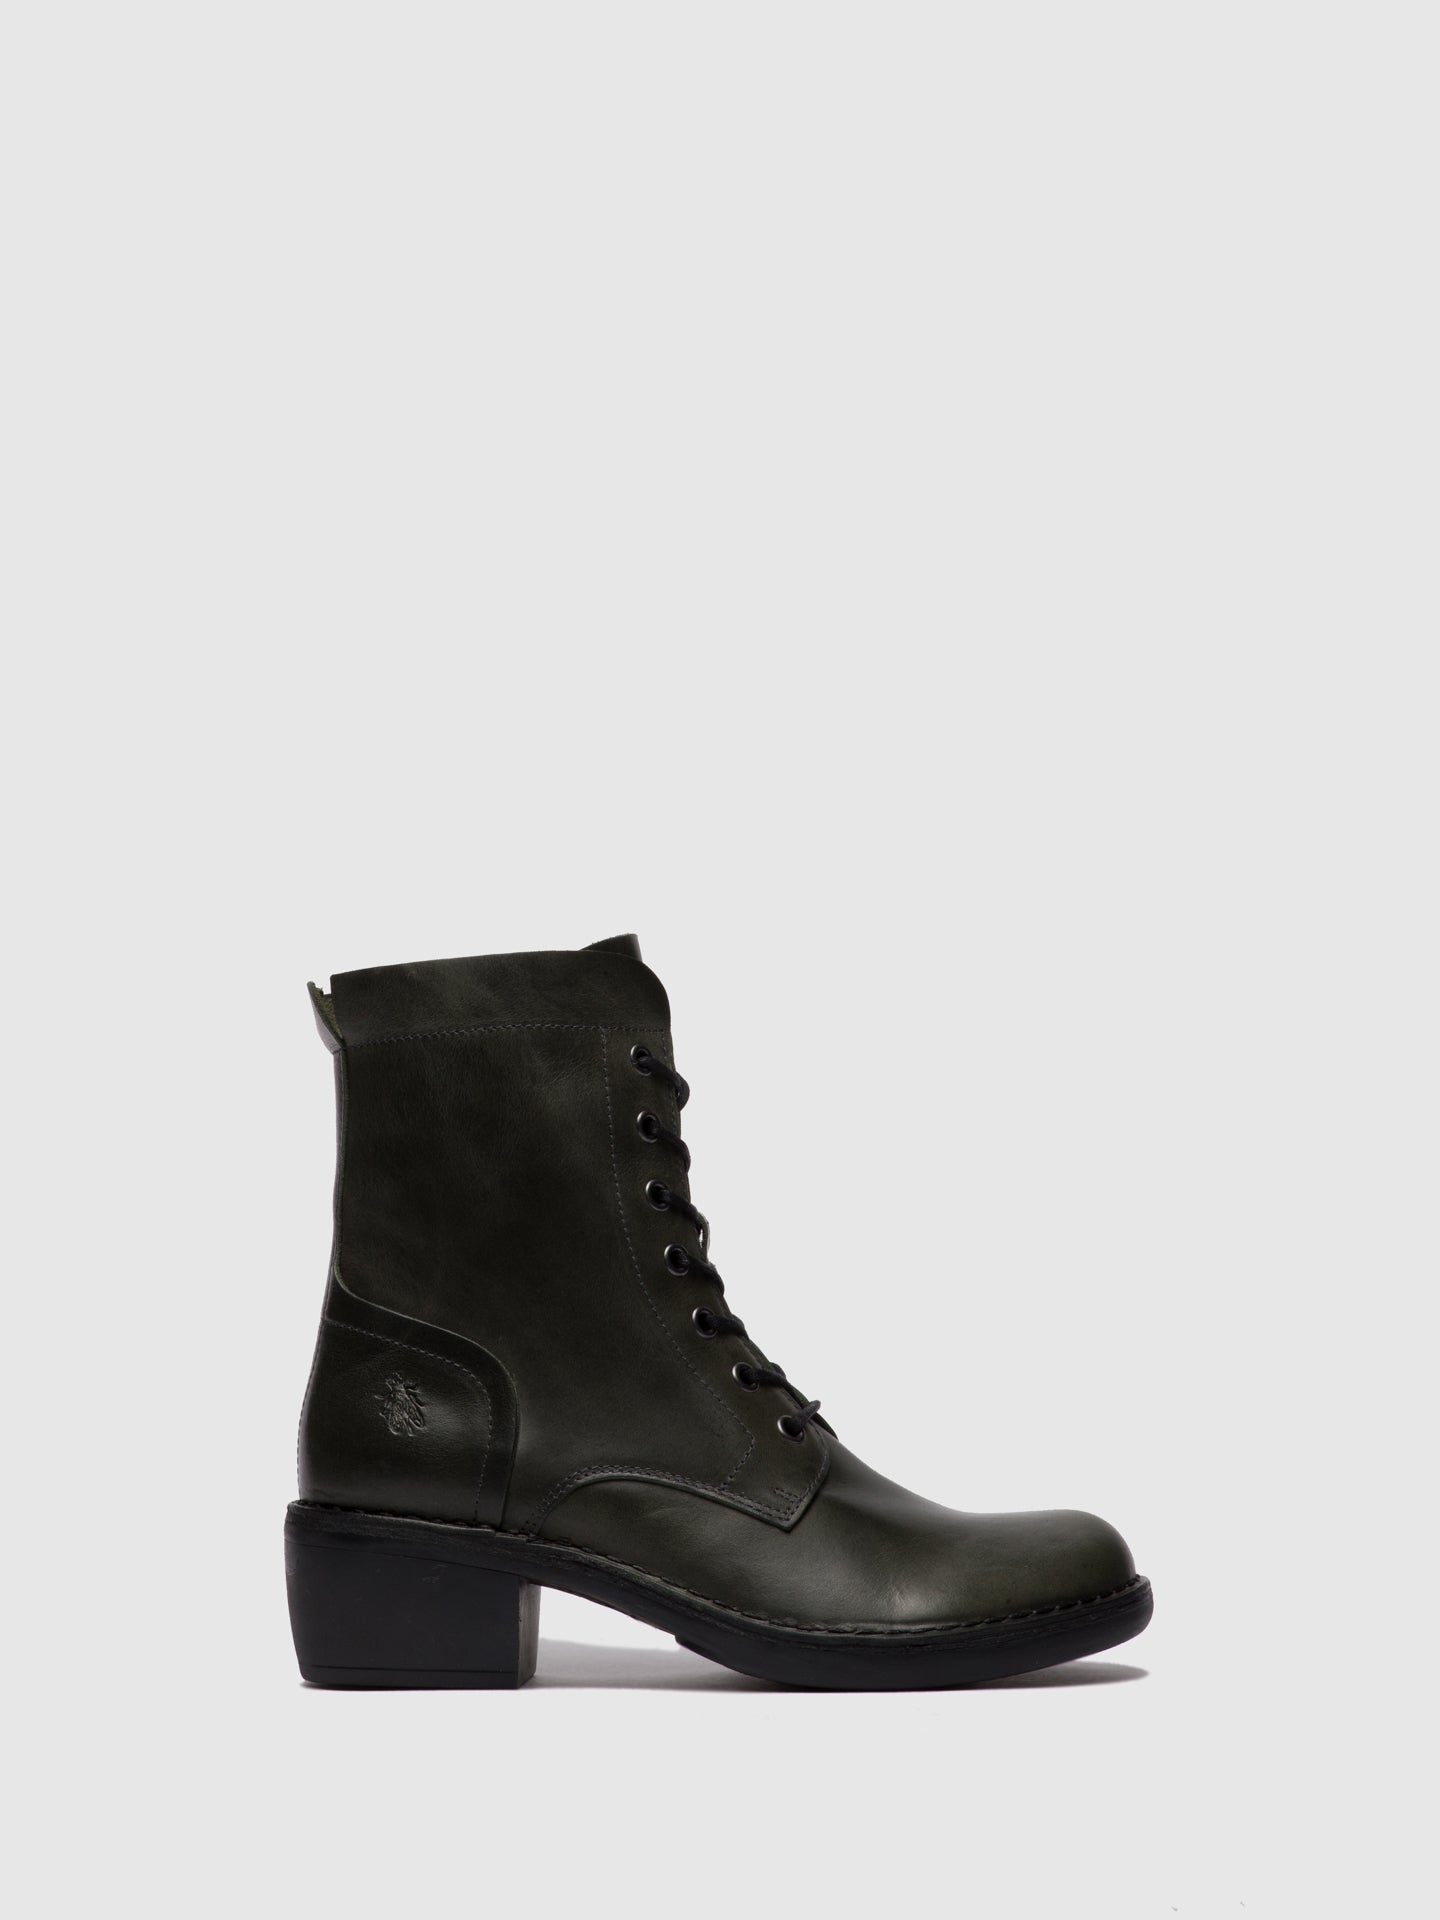 Fly London Lace-up Ankle Boots MILU044FLY RUG DIESEL